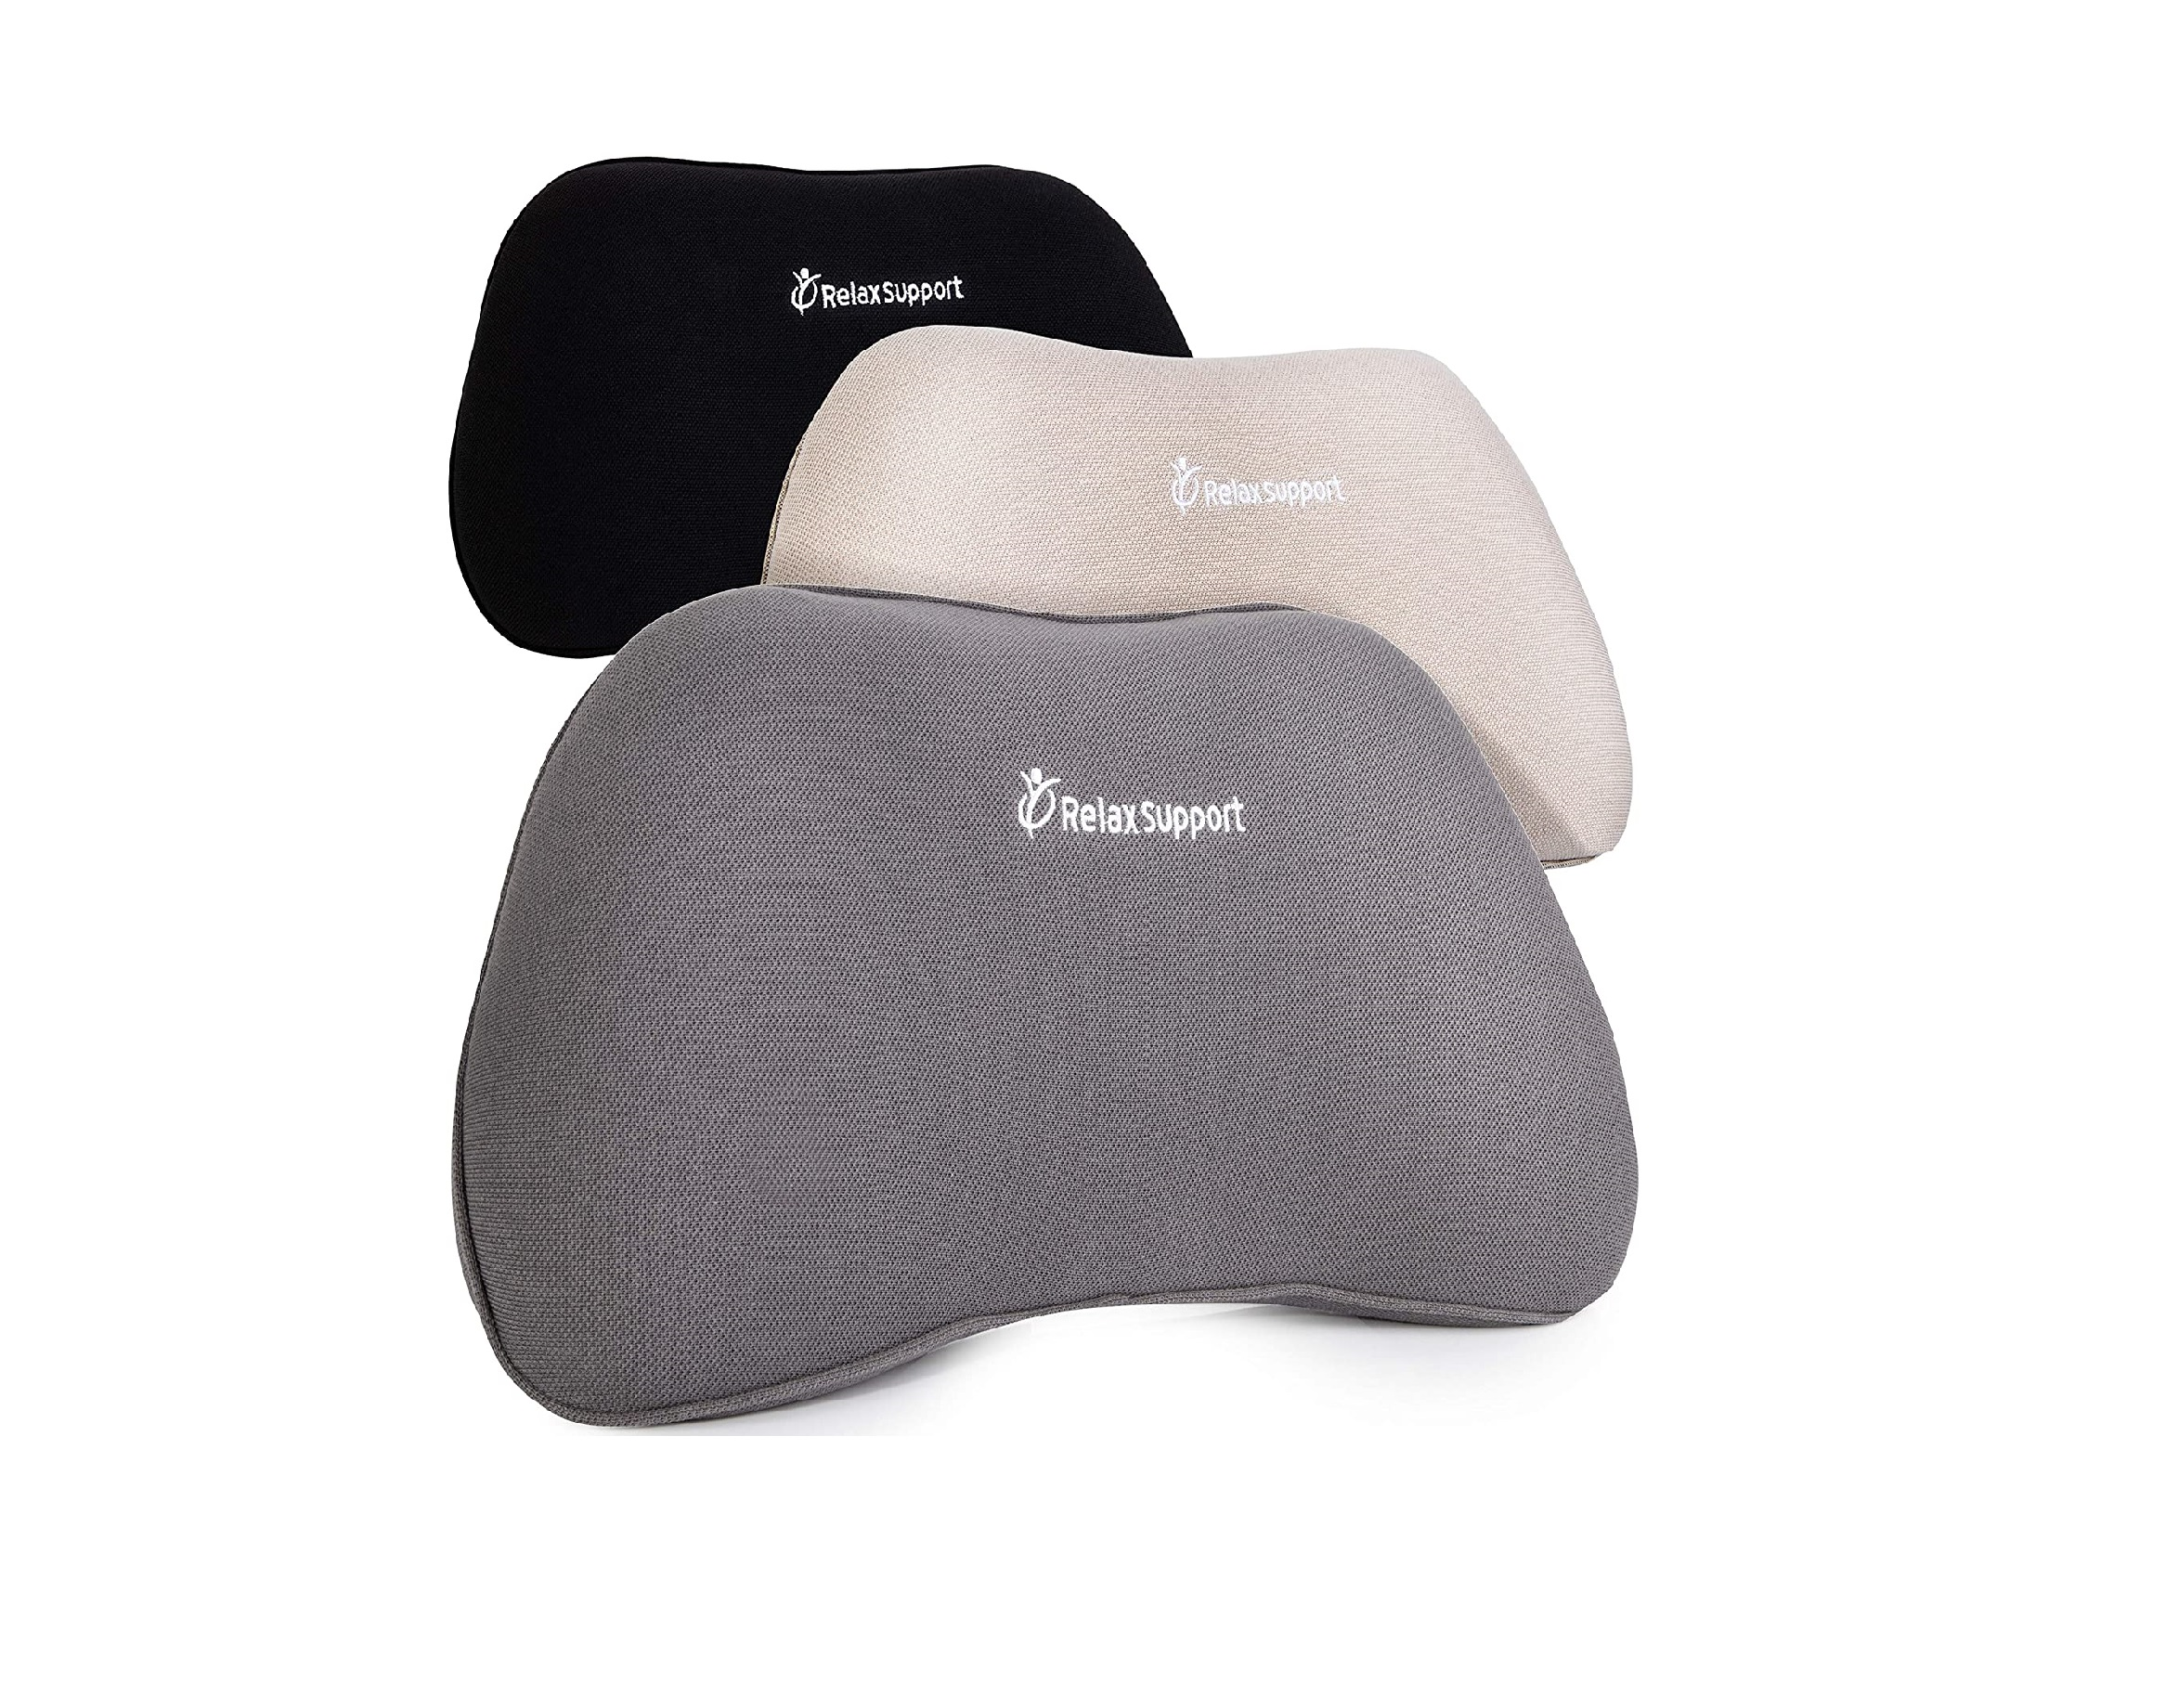 Top 5 Best Lumbar Support Pillows in 2020 Reviews